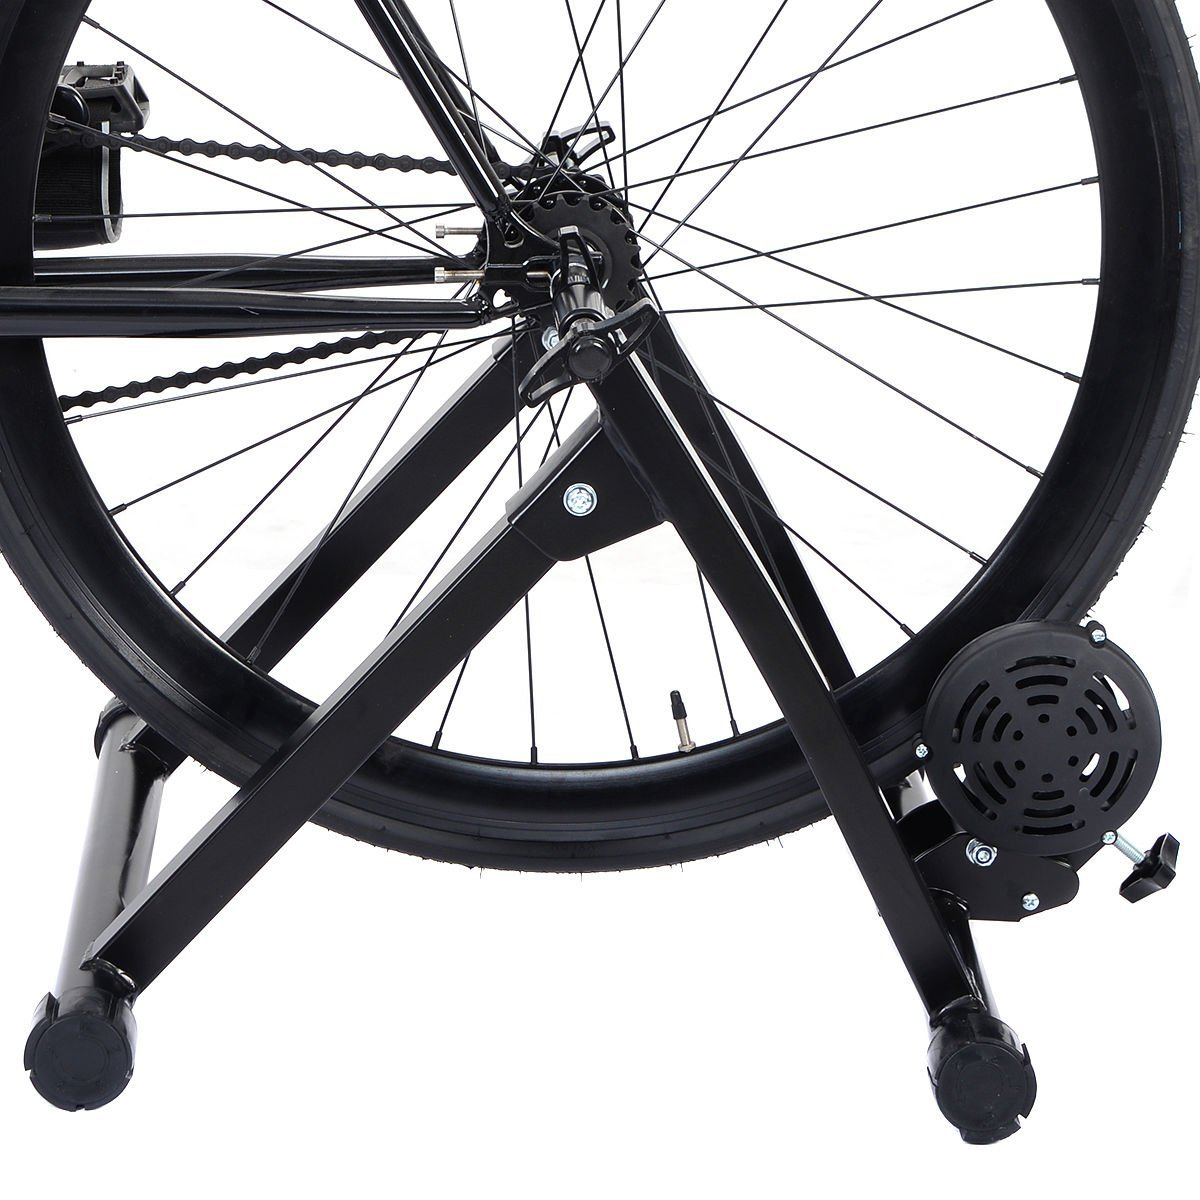 Goplus Portable Magnet Steel Bike/Bicycle Indoor Exercise Trainer Stand by Goplus (Image #4)